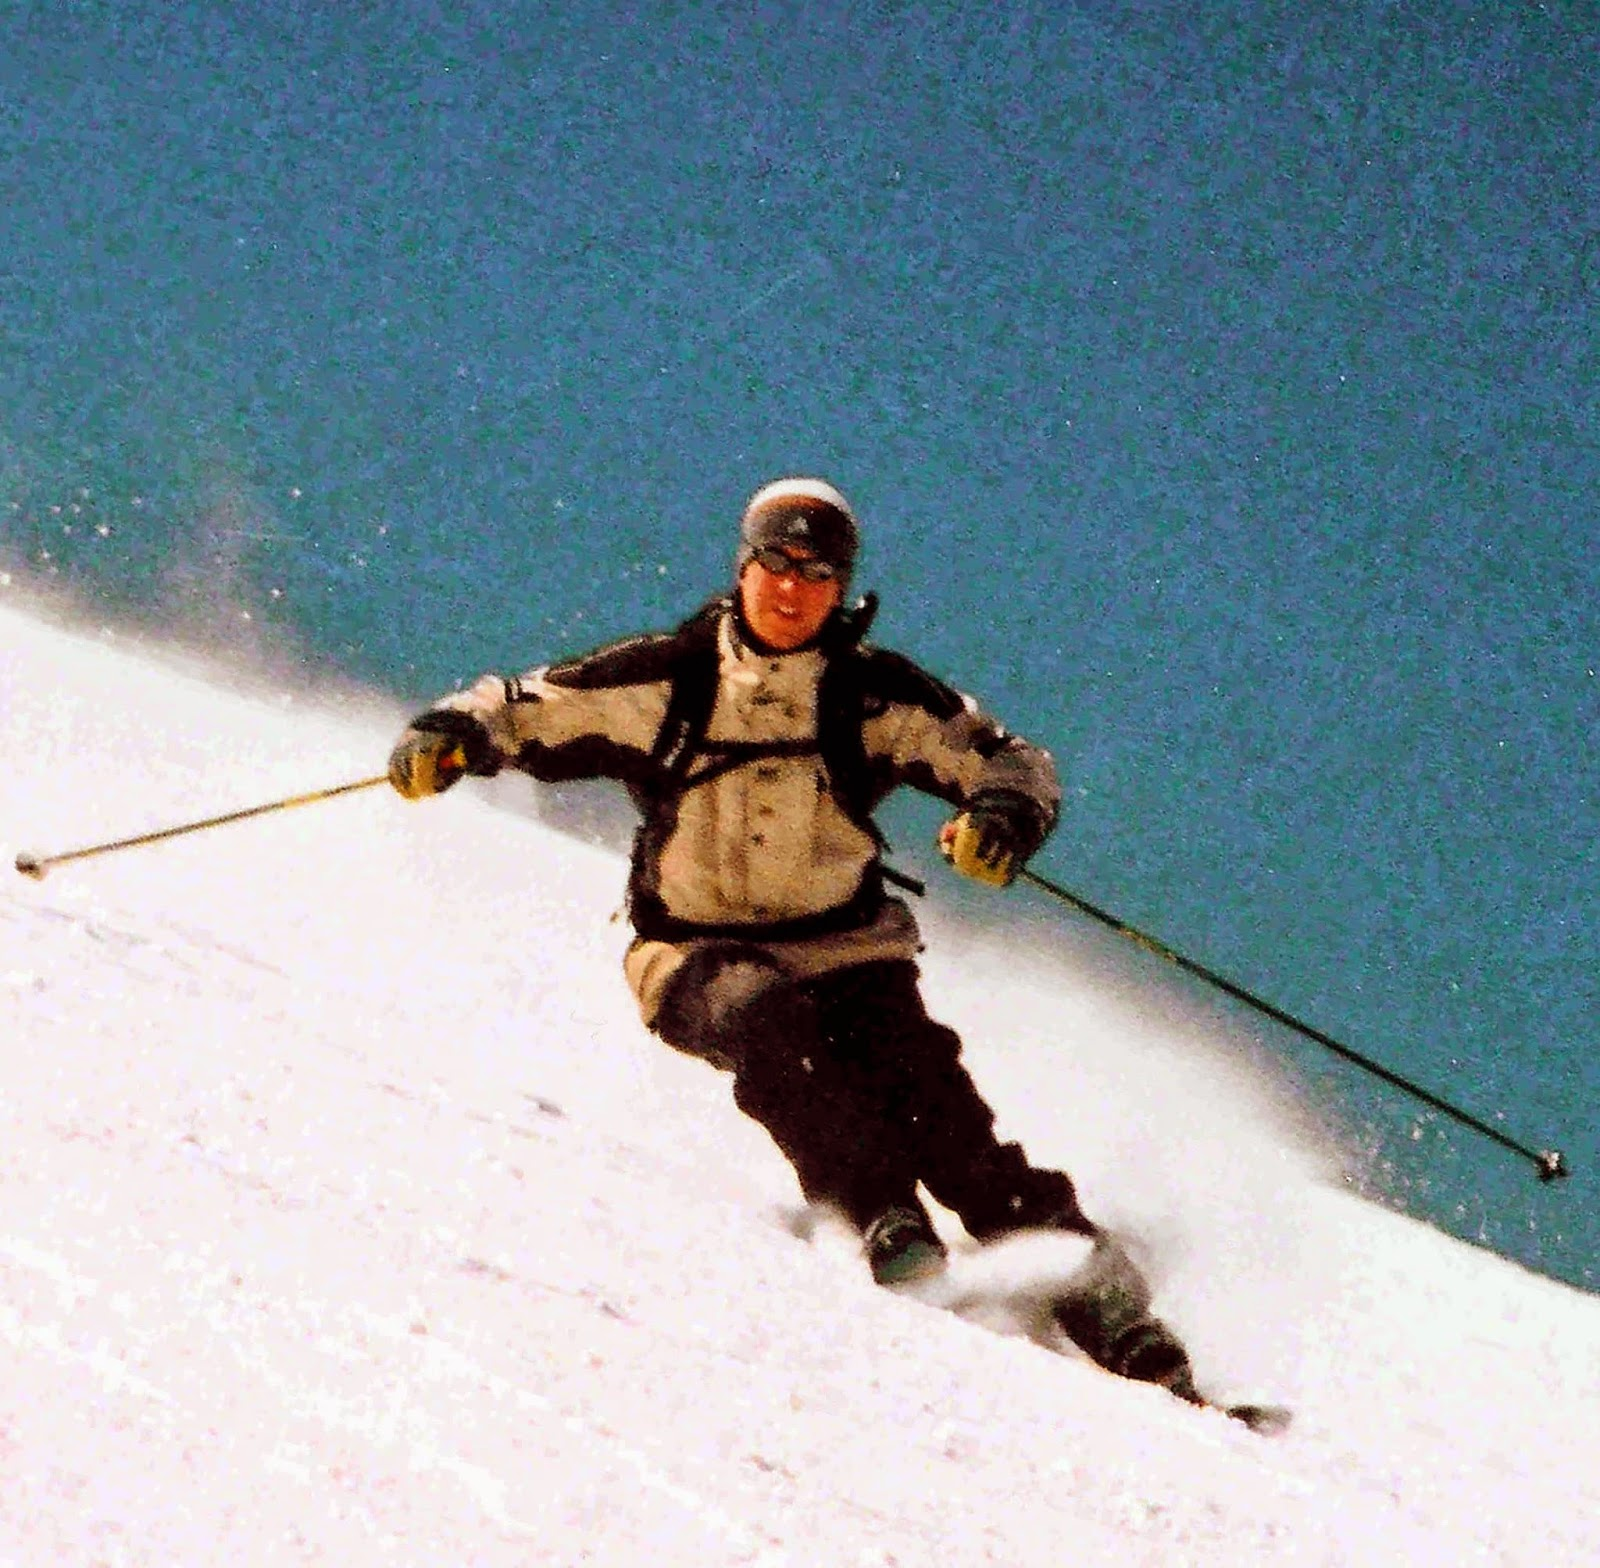 Snow skiing is just a short drive from Florida